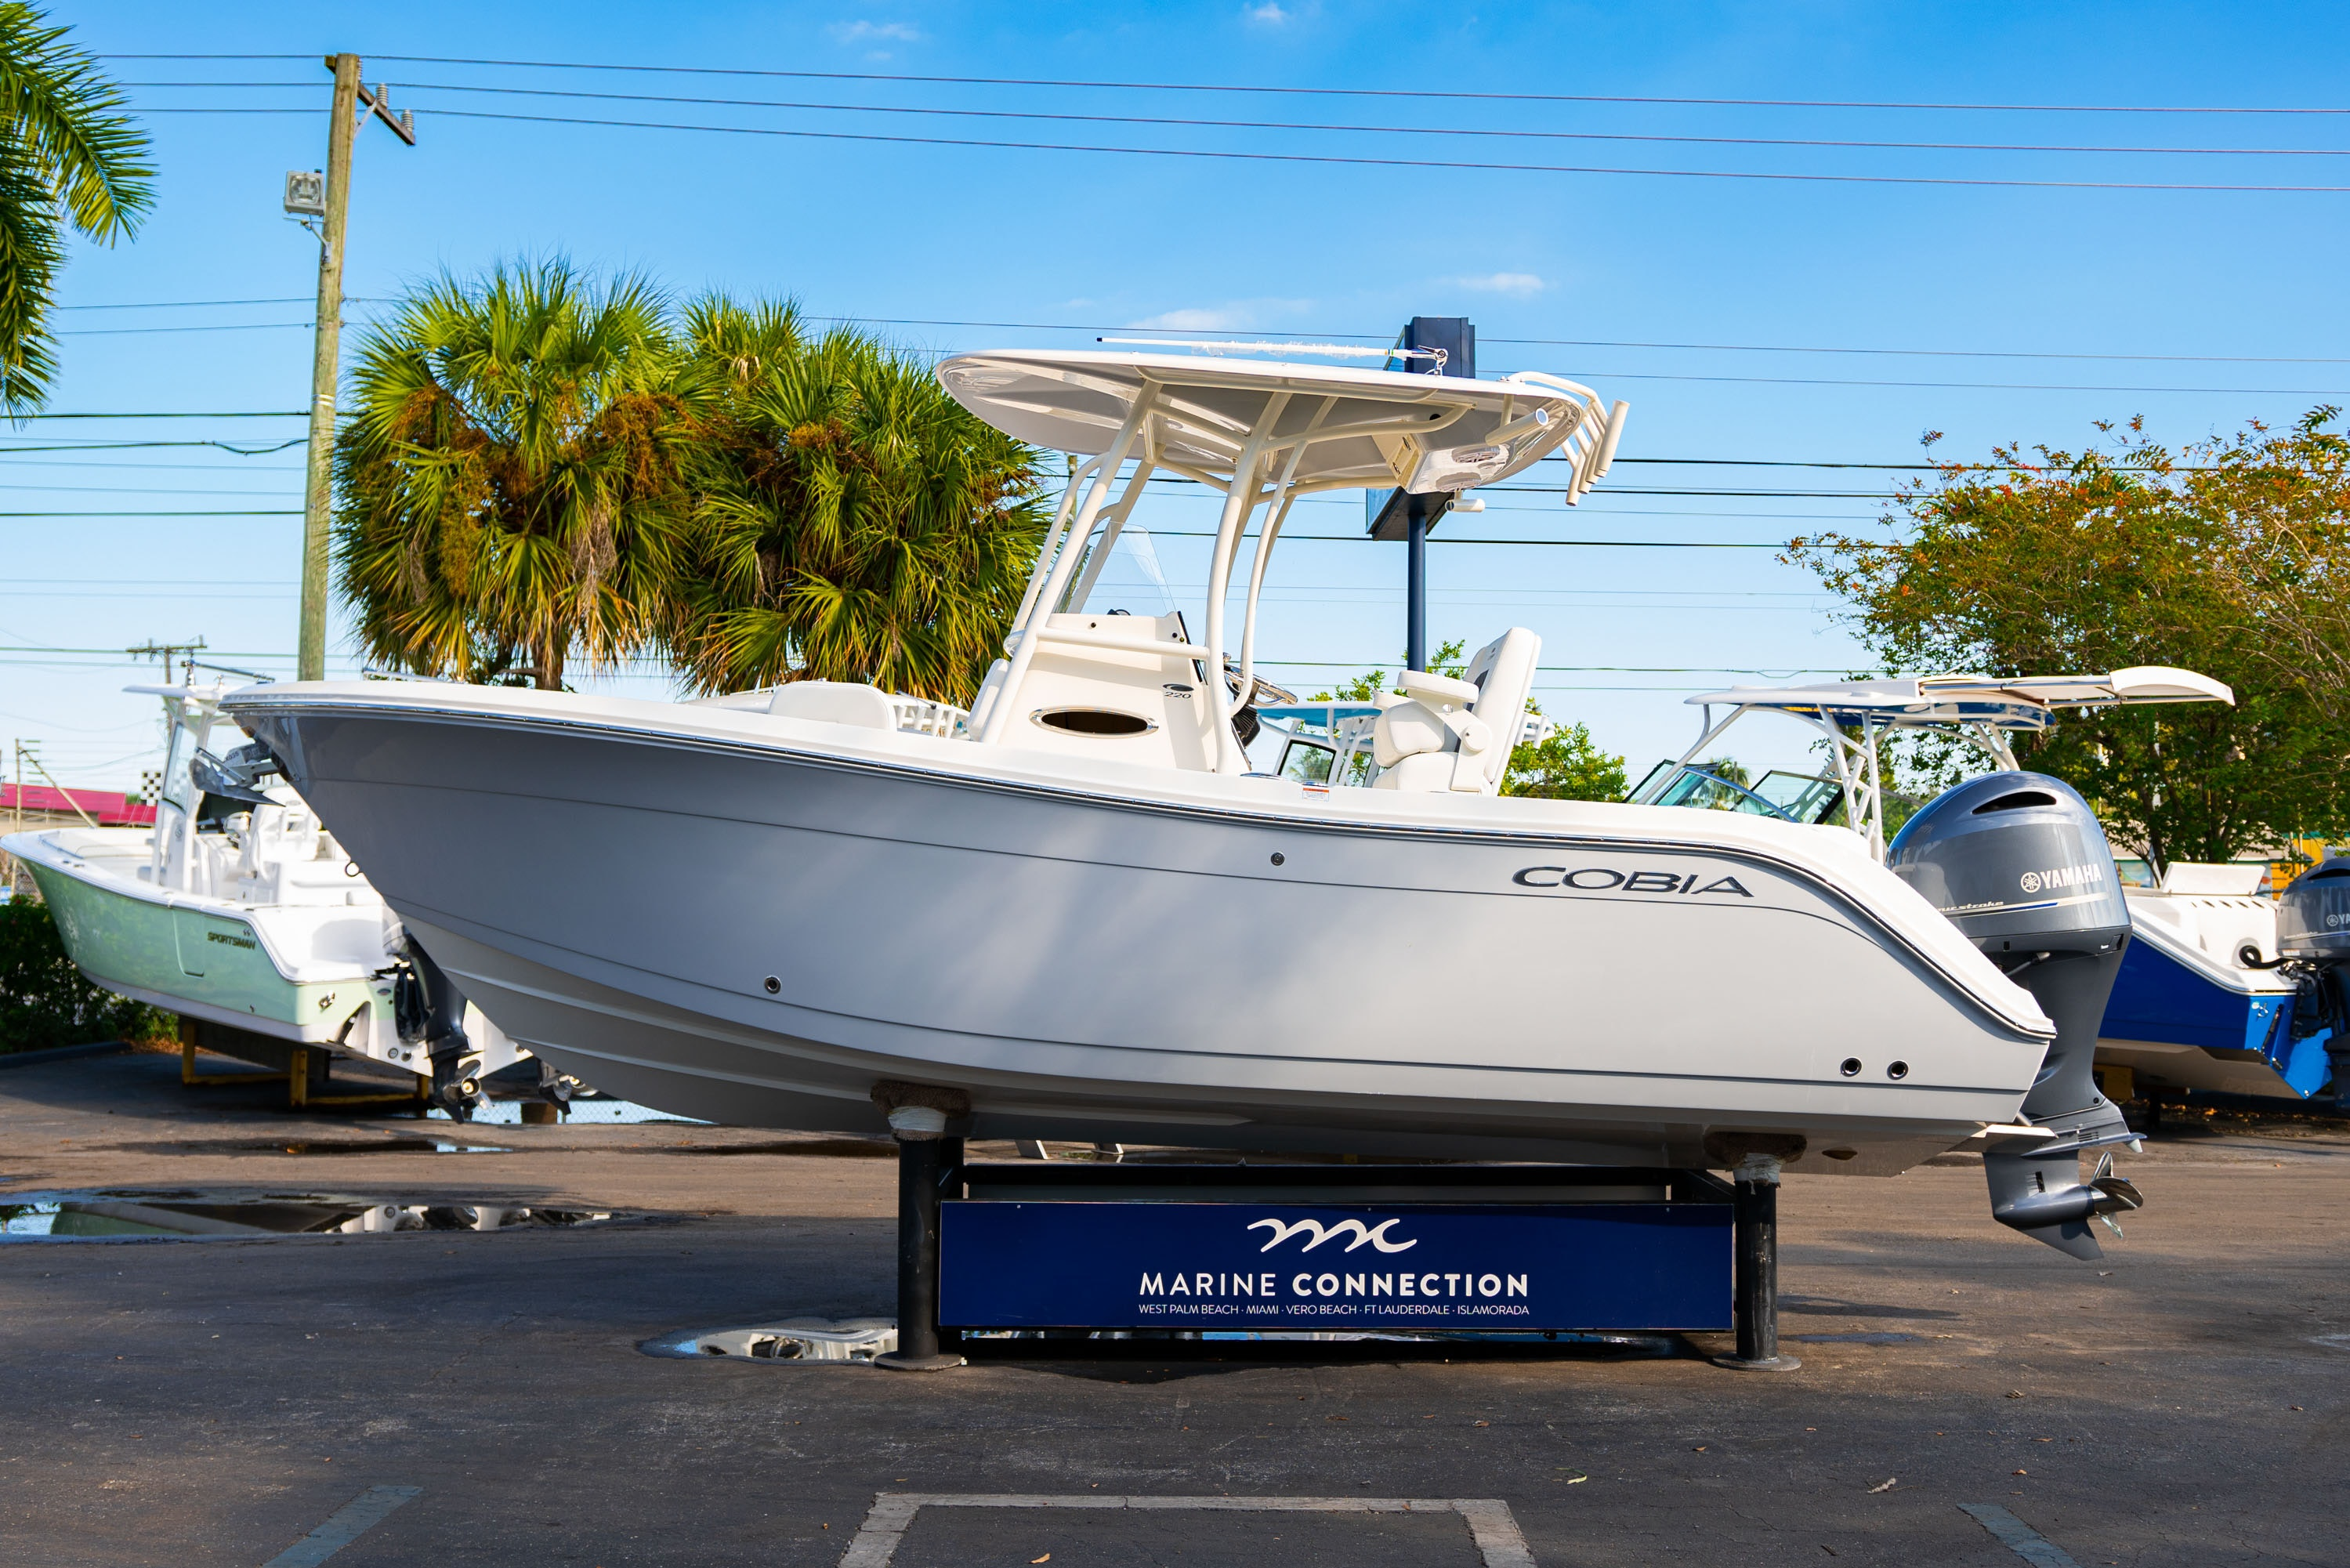 Thumbnail 4 for New 2020 Cobia 220 CC boat for sale in West Palm Beach, FL